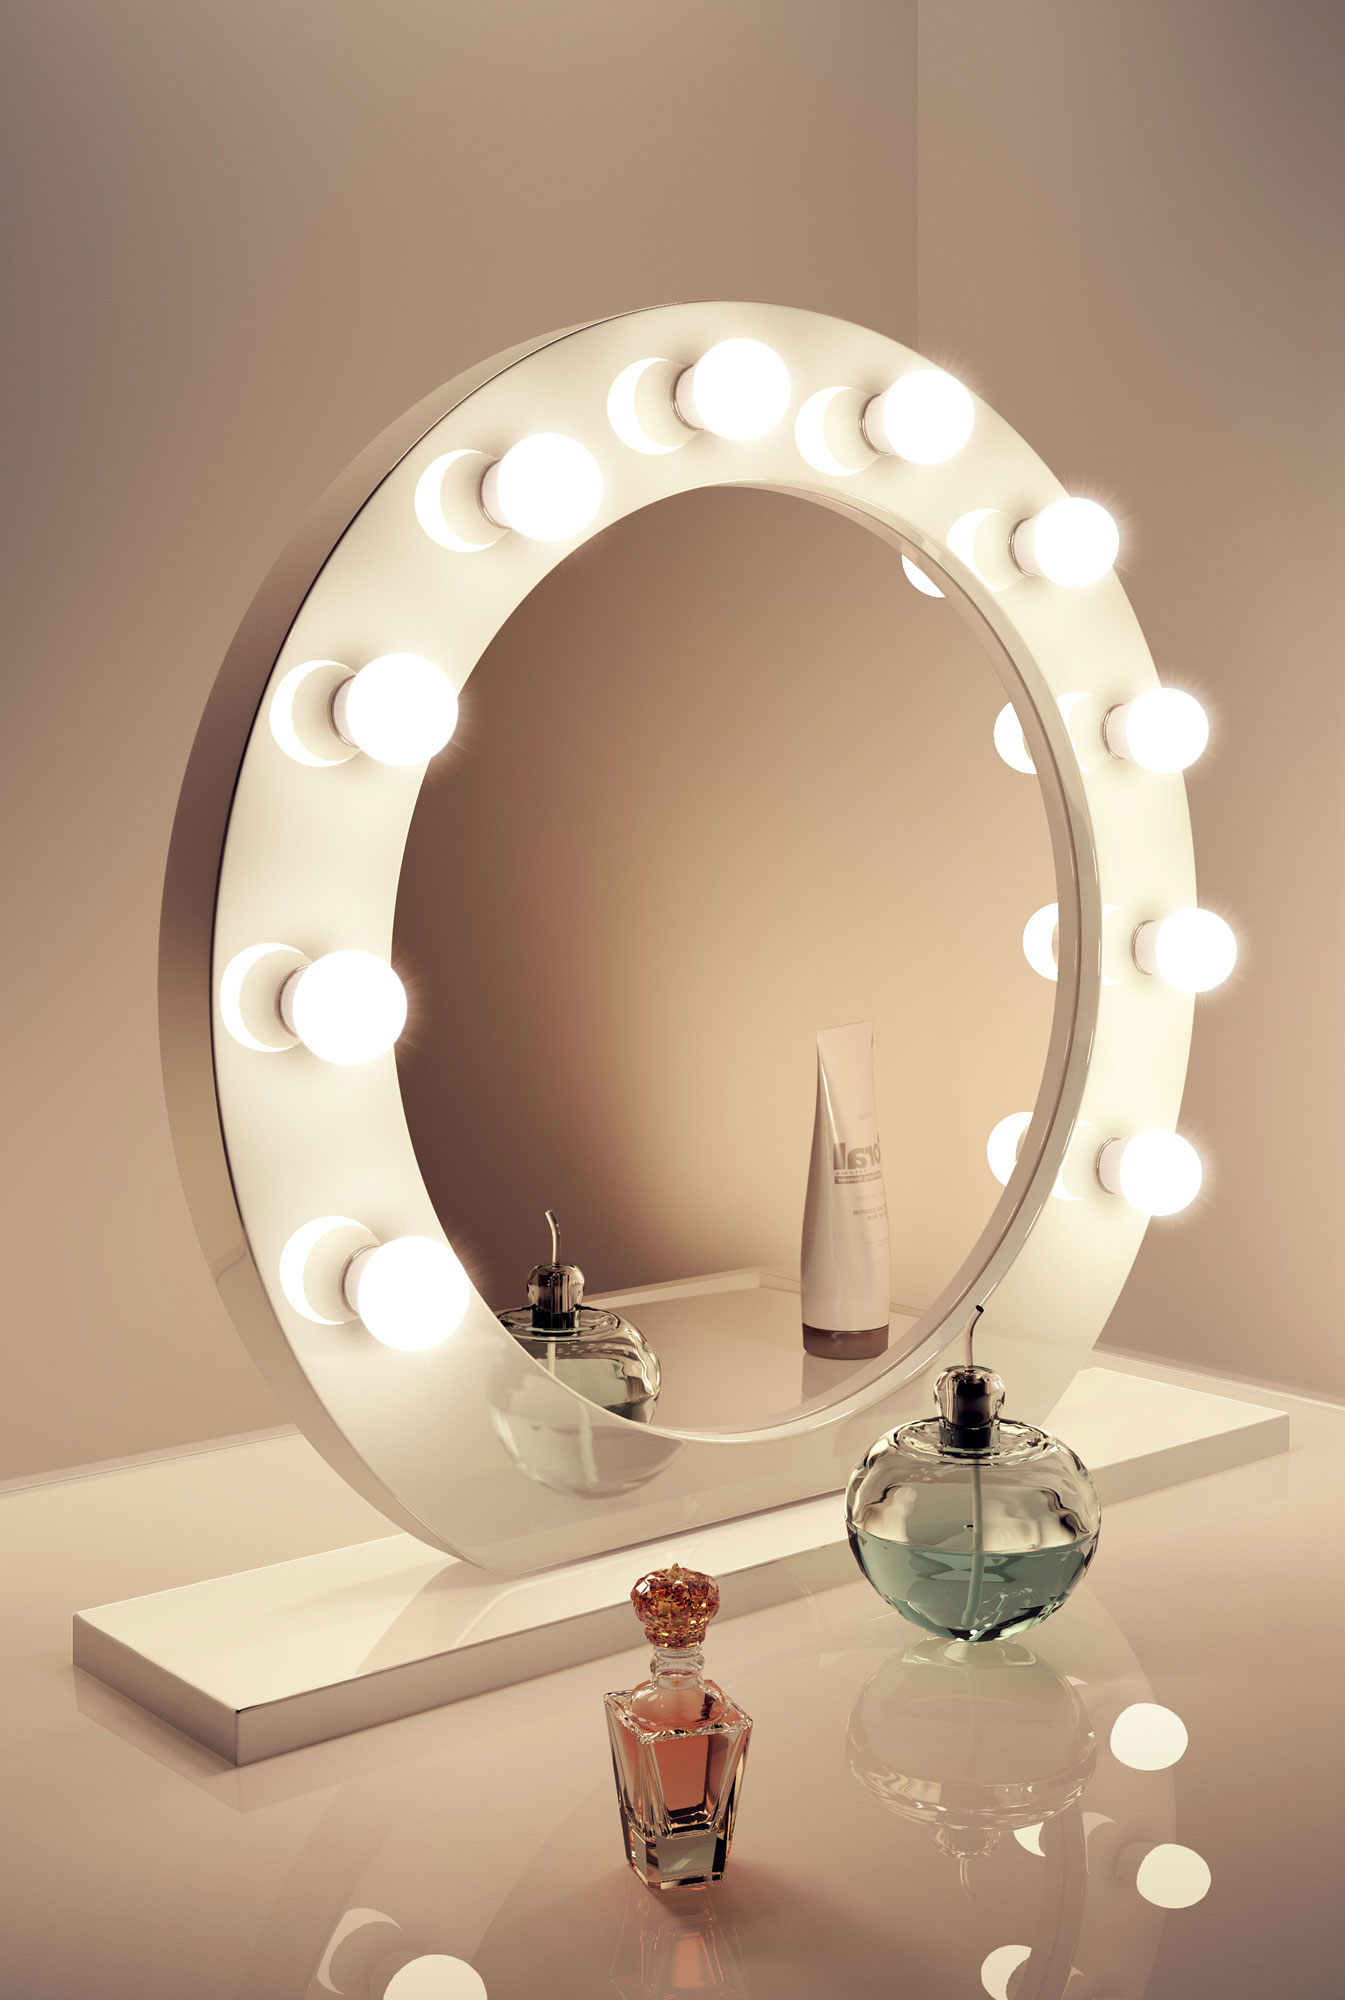 High Gloss White Round Hollywood Makeup Mirror With Warm White LED Lamps K248